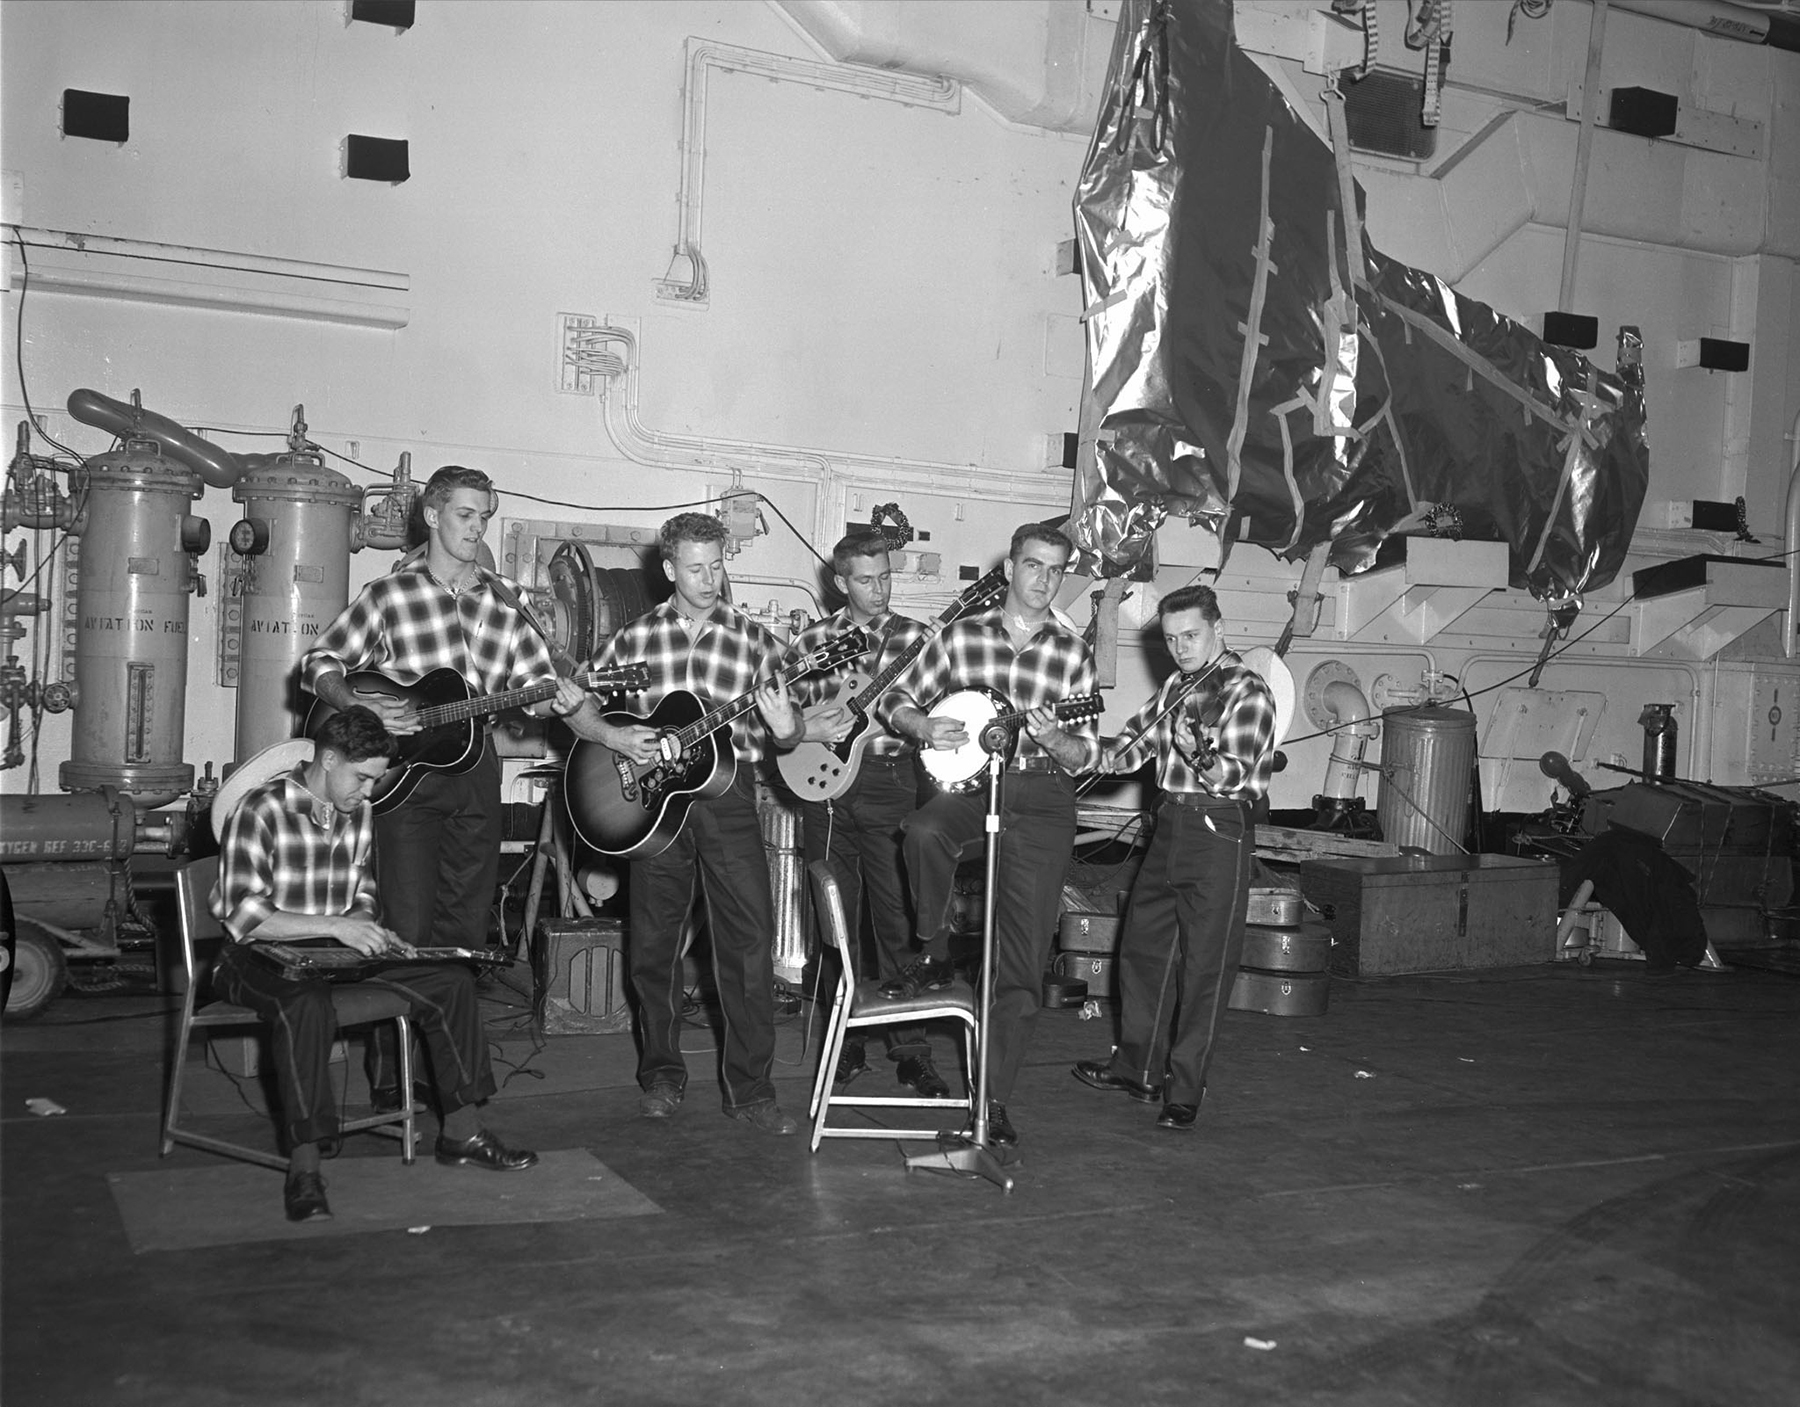 The Bonaventure Drifters, all crew members of aircraft carrier Her Majesty's Canadian Ship Bonaventure, entertain at a Christmas party for orphans in this undated photo. Bonaventure was alongside in Portsmouth, United Kingdom, after participating in NATO's Exercise Sharp Squall. The Drifters, a country sextet, played two sets, and Santa arrived on board by helicopter. PHOTO: DND Archives